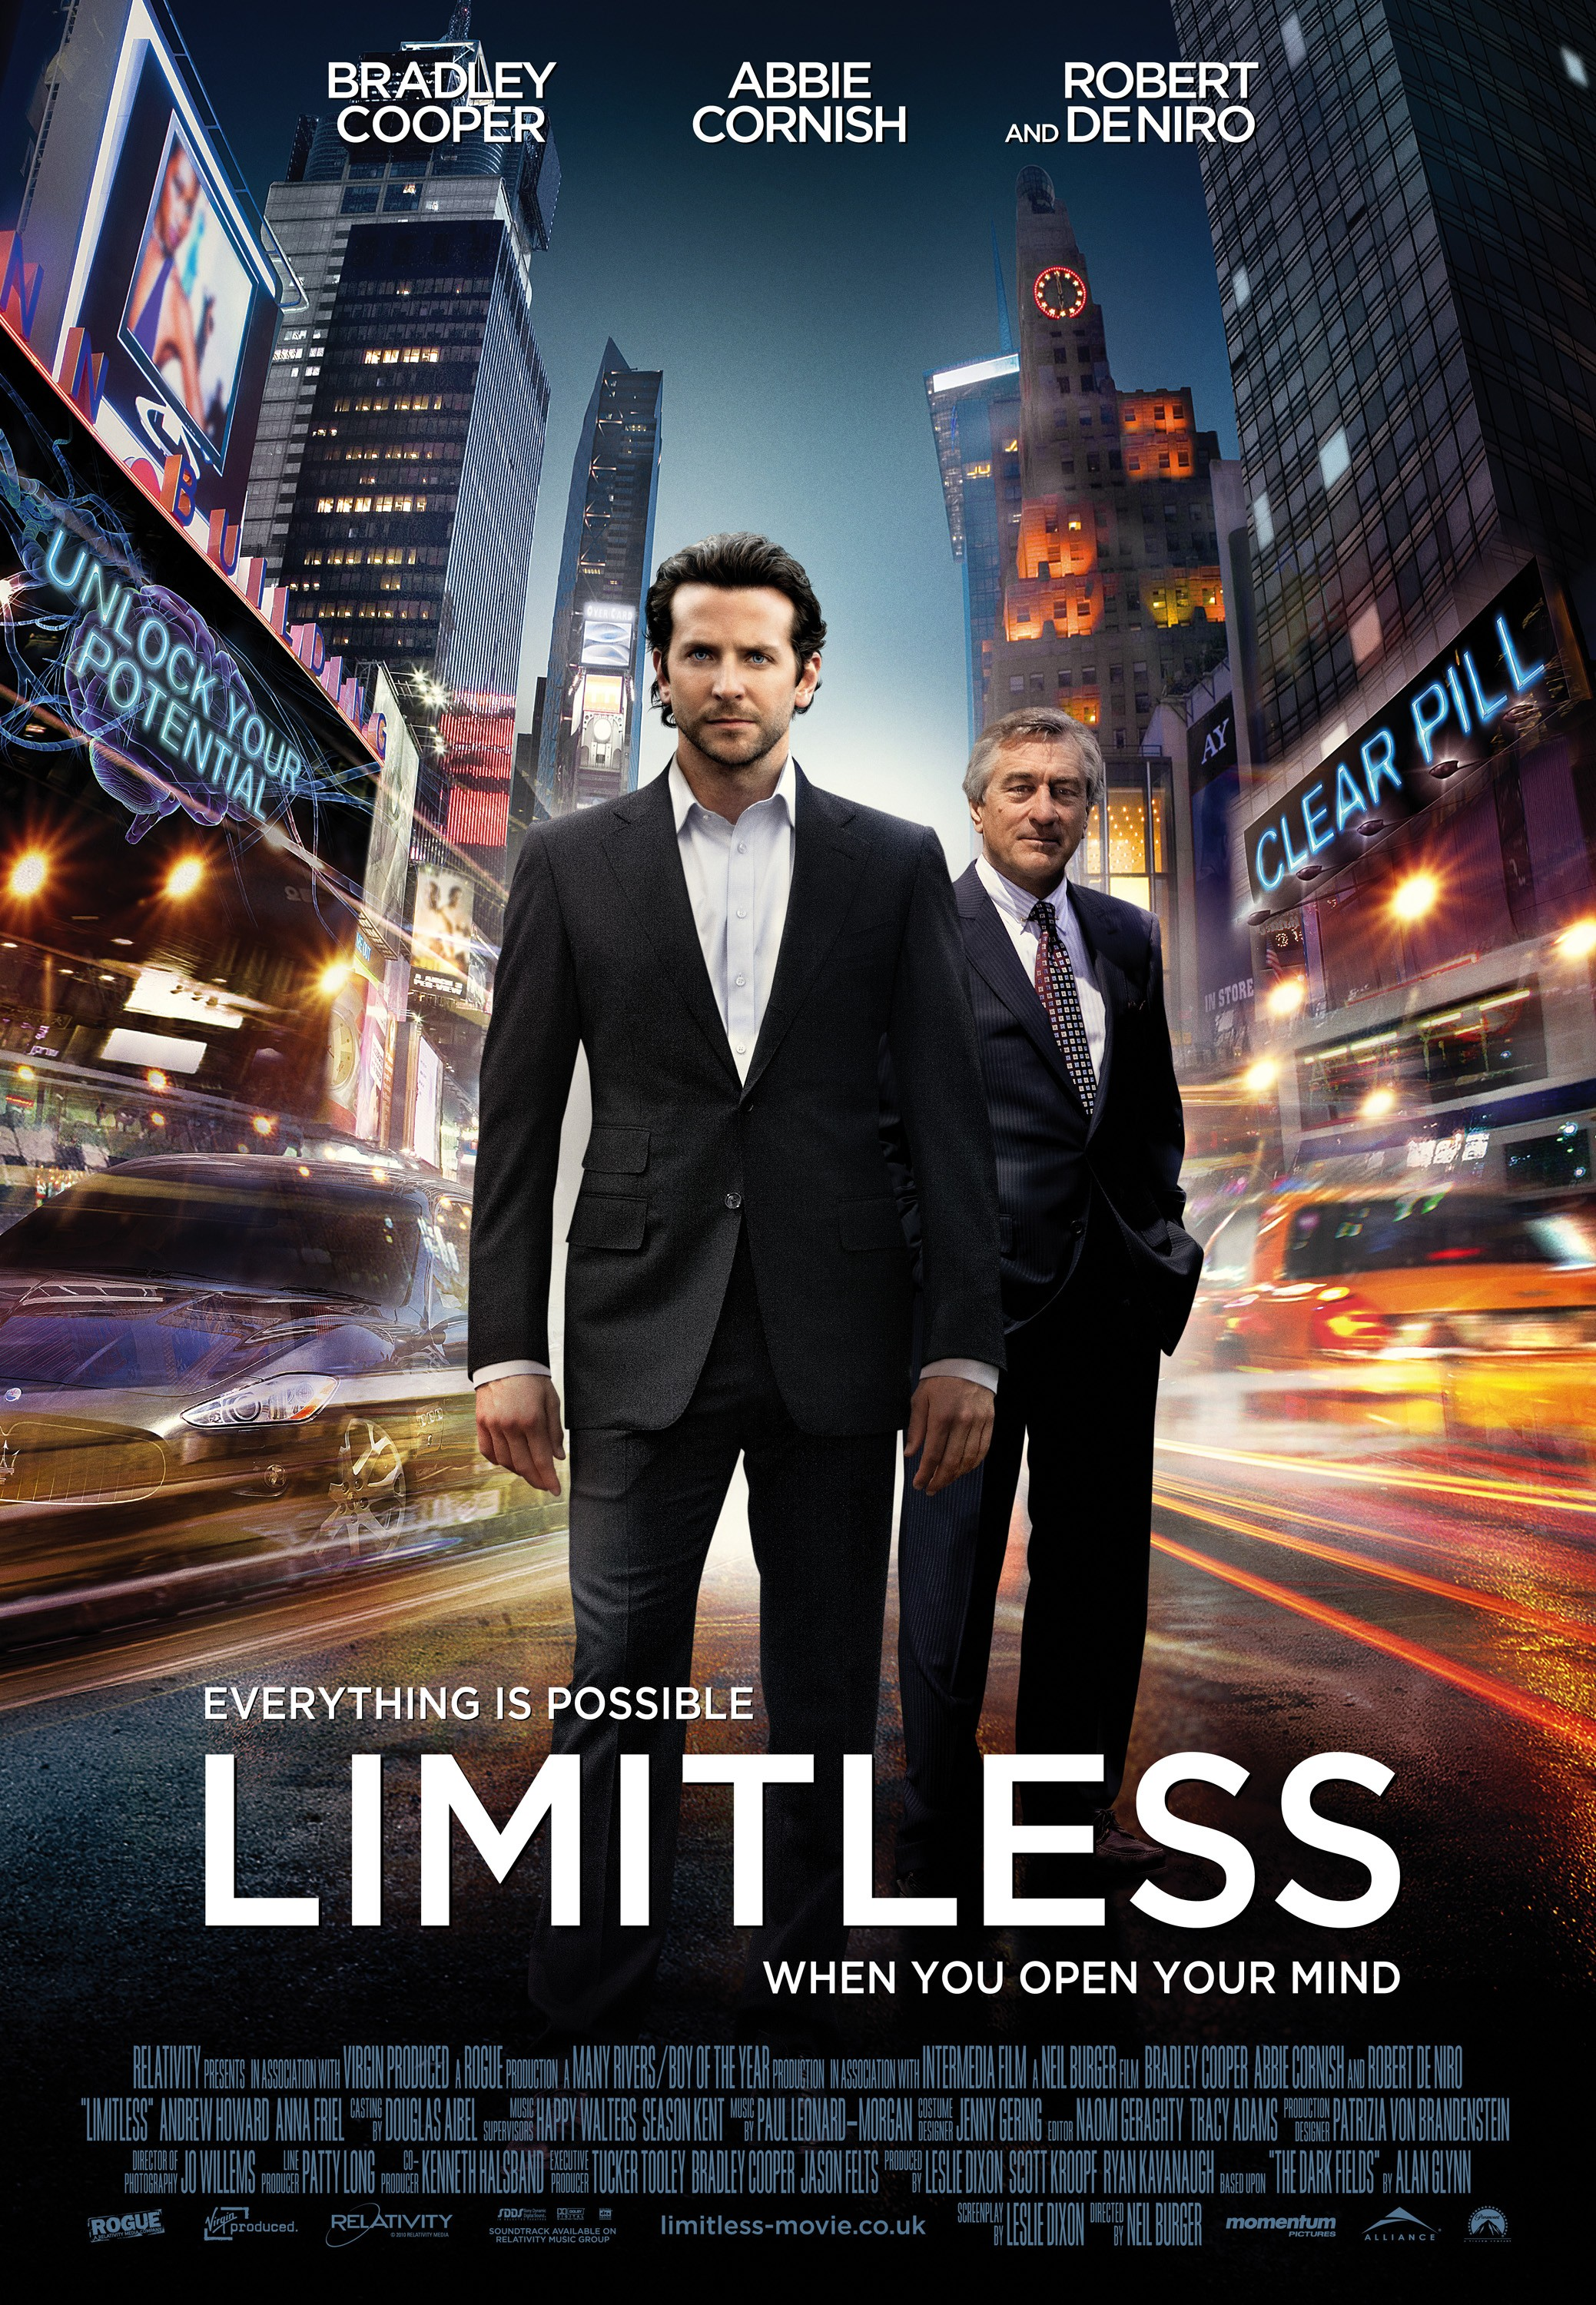 Limitless (2011) - Directed by: Neil BurgerStarring: Bradley Cooper, Robert De Niro, Abbie CornishRated: PG-13 for Thematic Material Involving a Drug, Violence Including Disturbing Images, Sexuality and LanguageRunning Time: 1 h 45 mTMM Score: 3 stars out of 5STRENGTHS: Fun Concept, Some ActingWEAKNESSES: It Thinks It's Smarter Than It Is, Some Acting